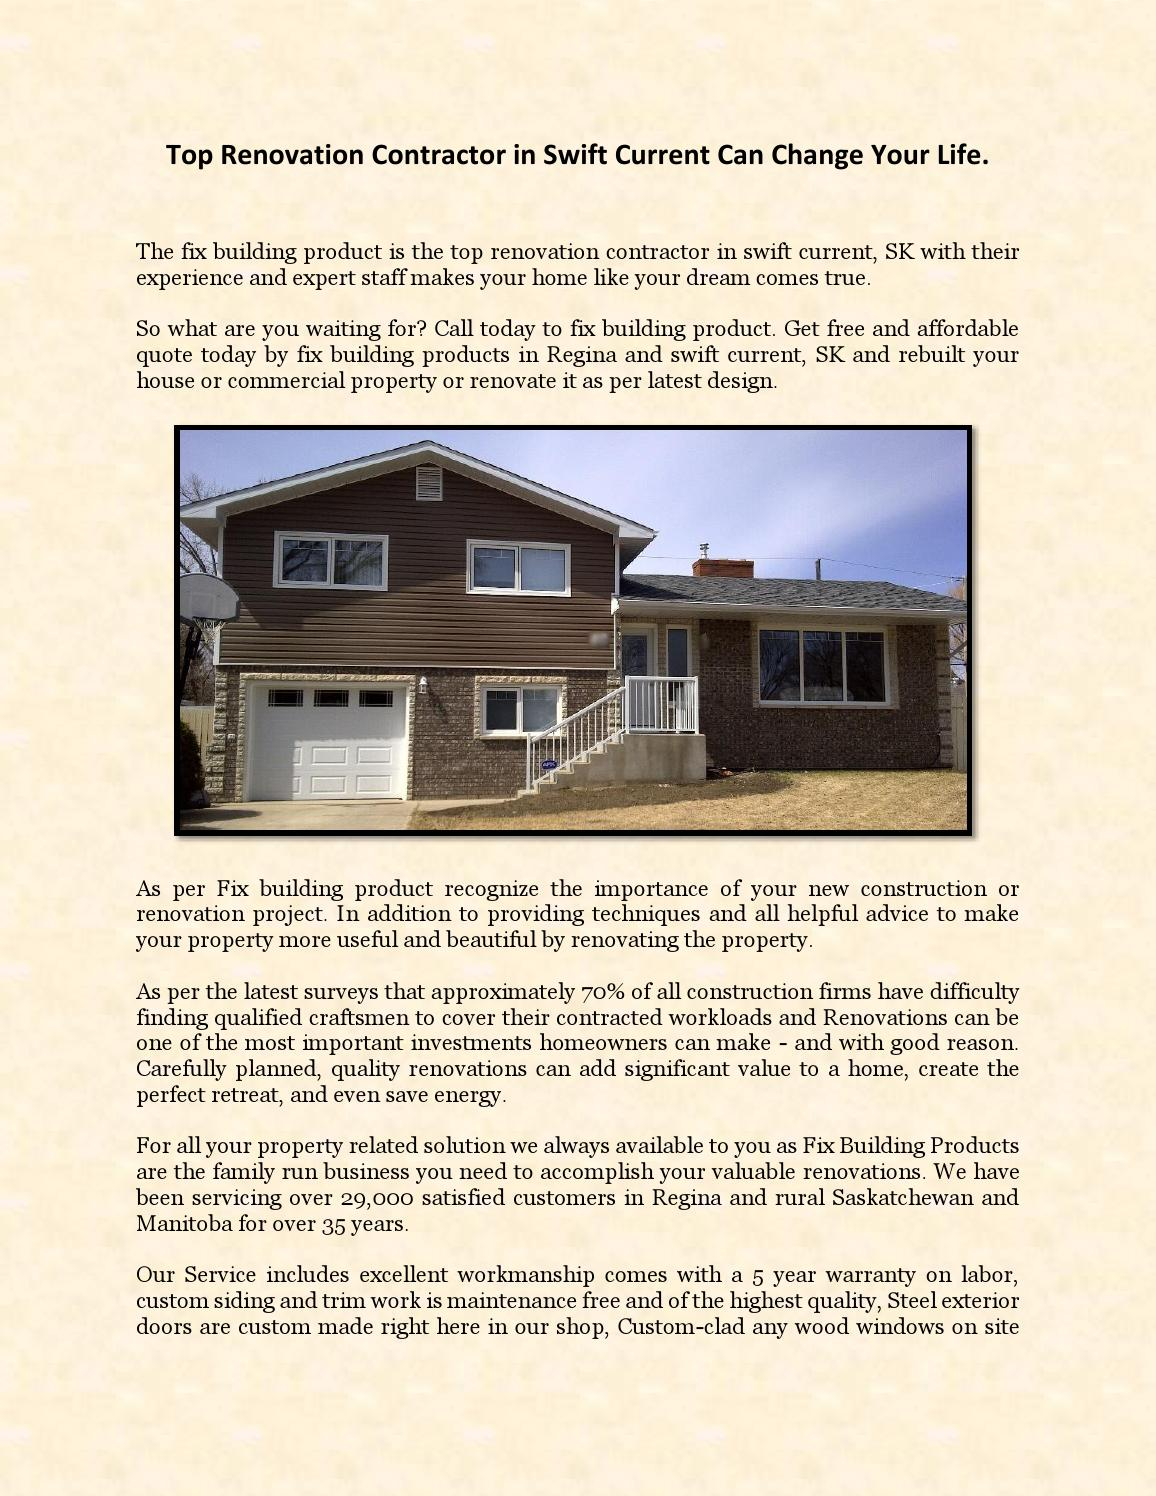 Top Renovation Contractor In Swift Current Can Change Your Life By  Fixbuildingproducts   Issuu